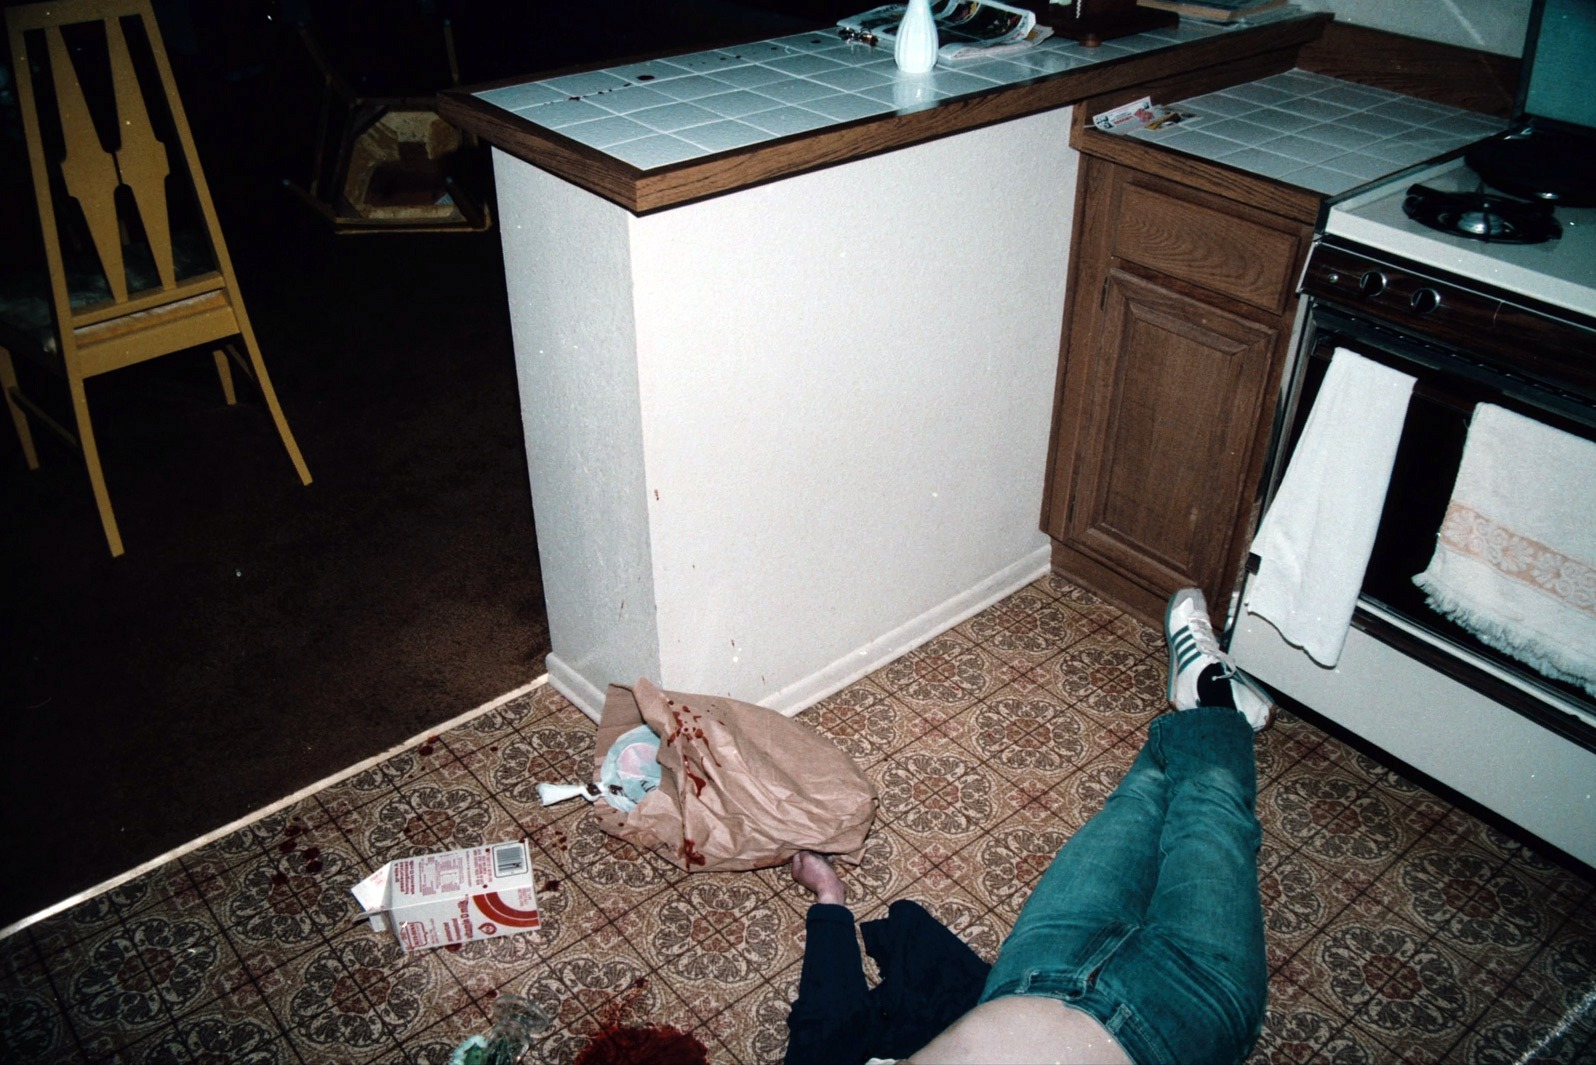 richard-ramirez-crime-scene-1 A GRAPHIC Look Back at Richard Ramirez's Reign of Terror